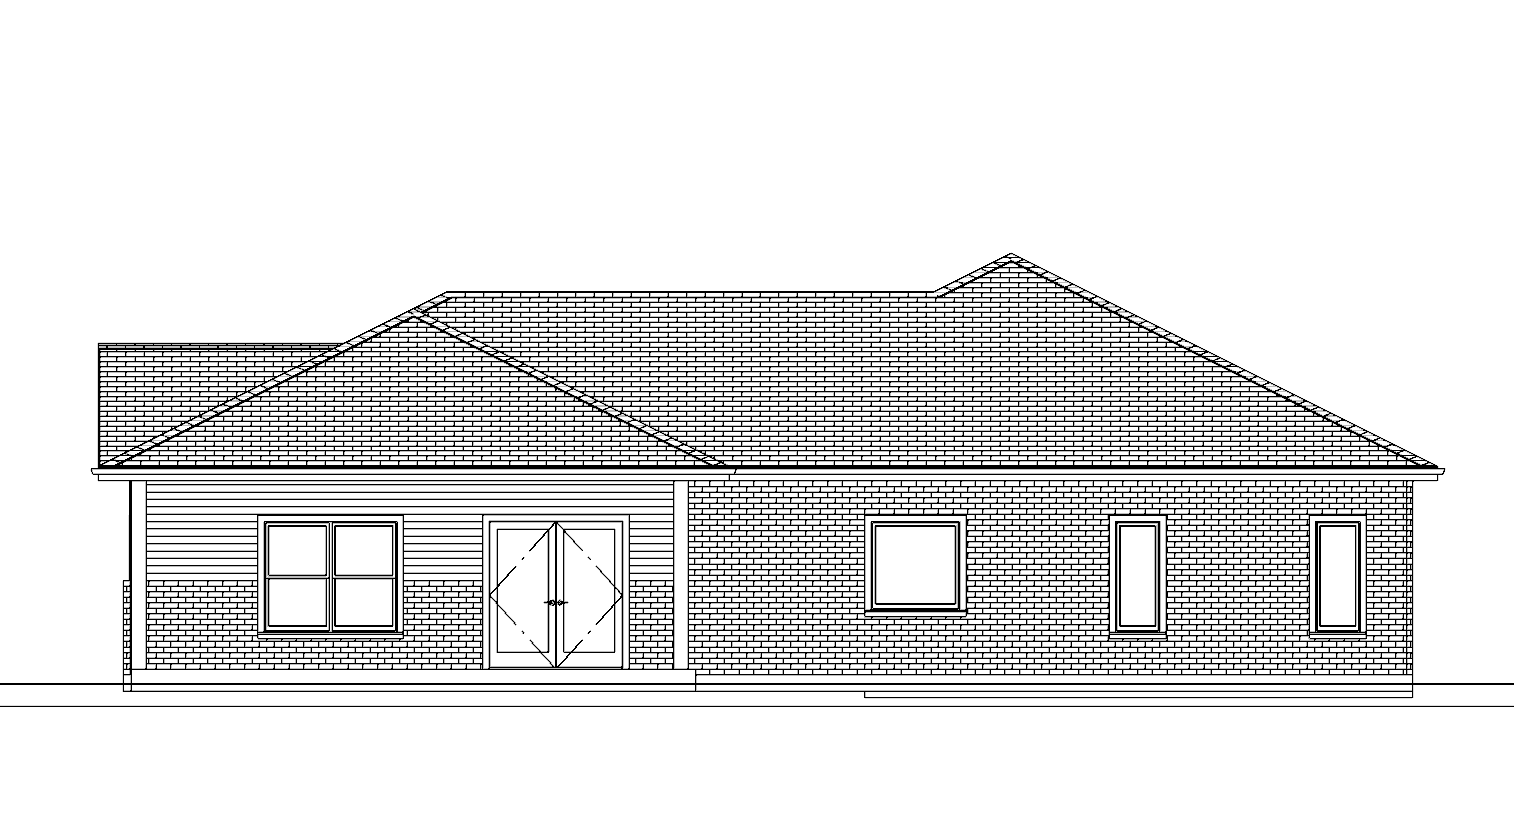 Plan No. 1040_BK ELEVATION